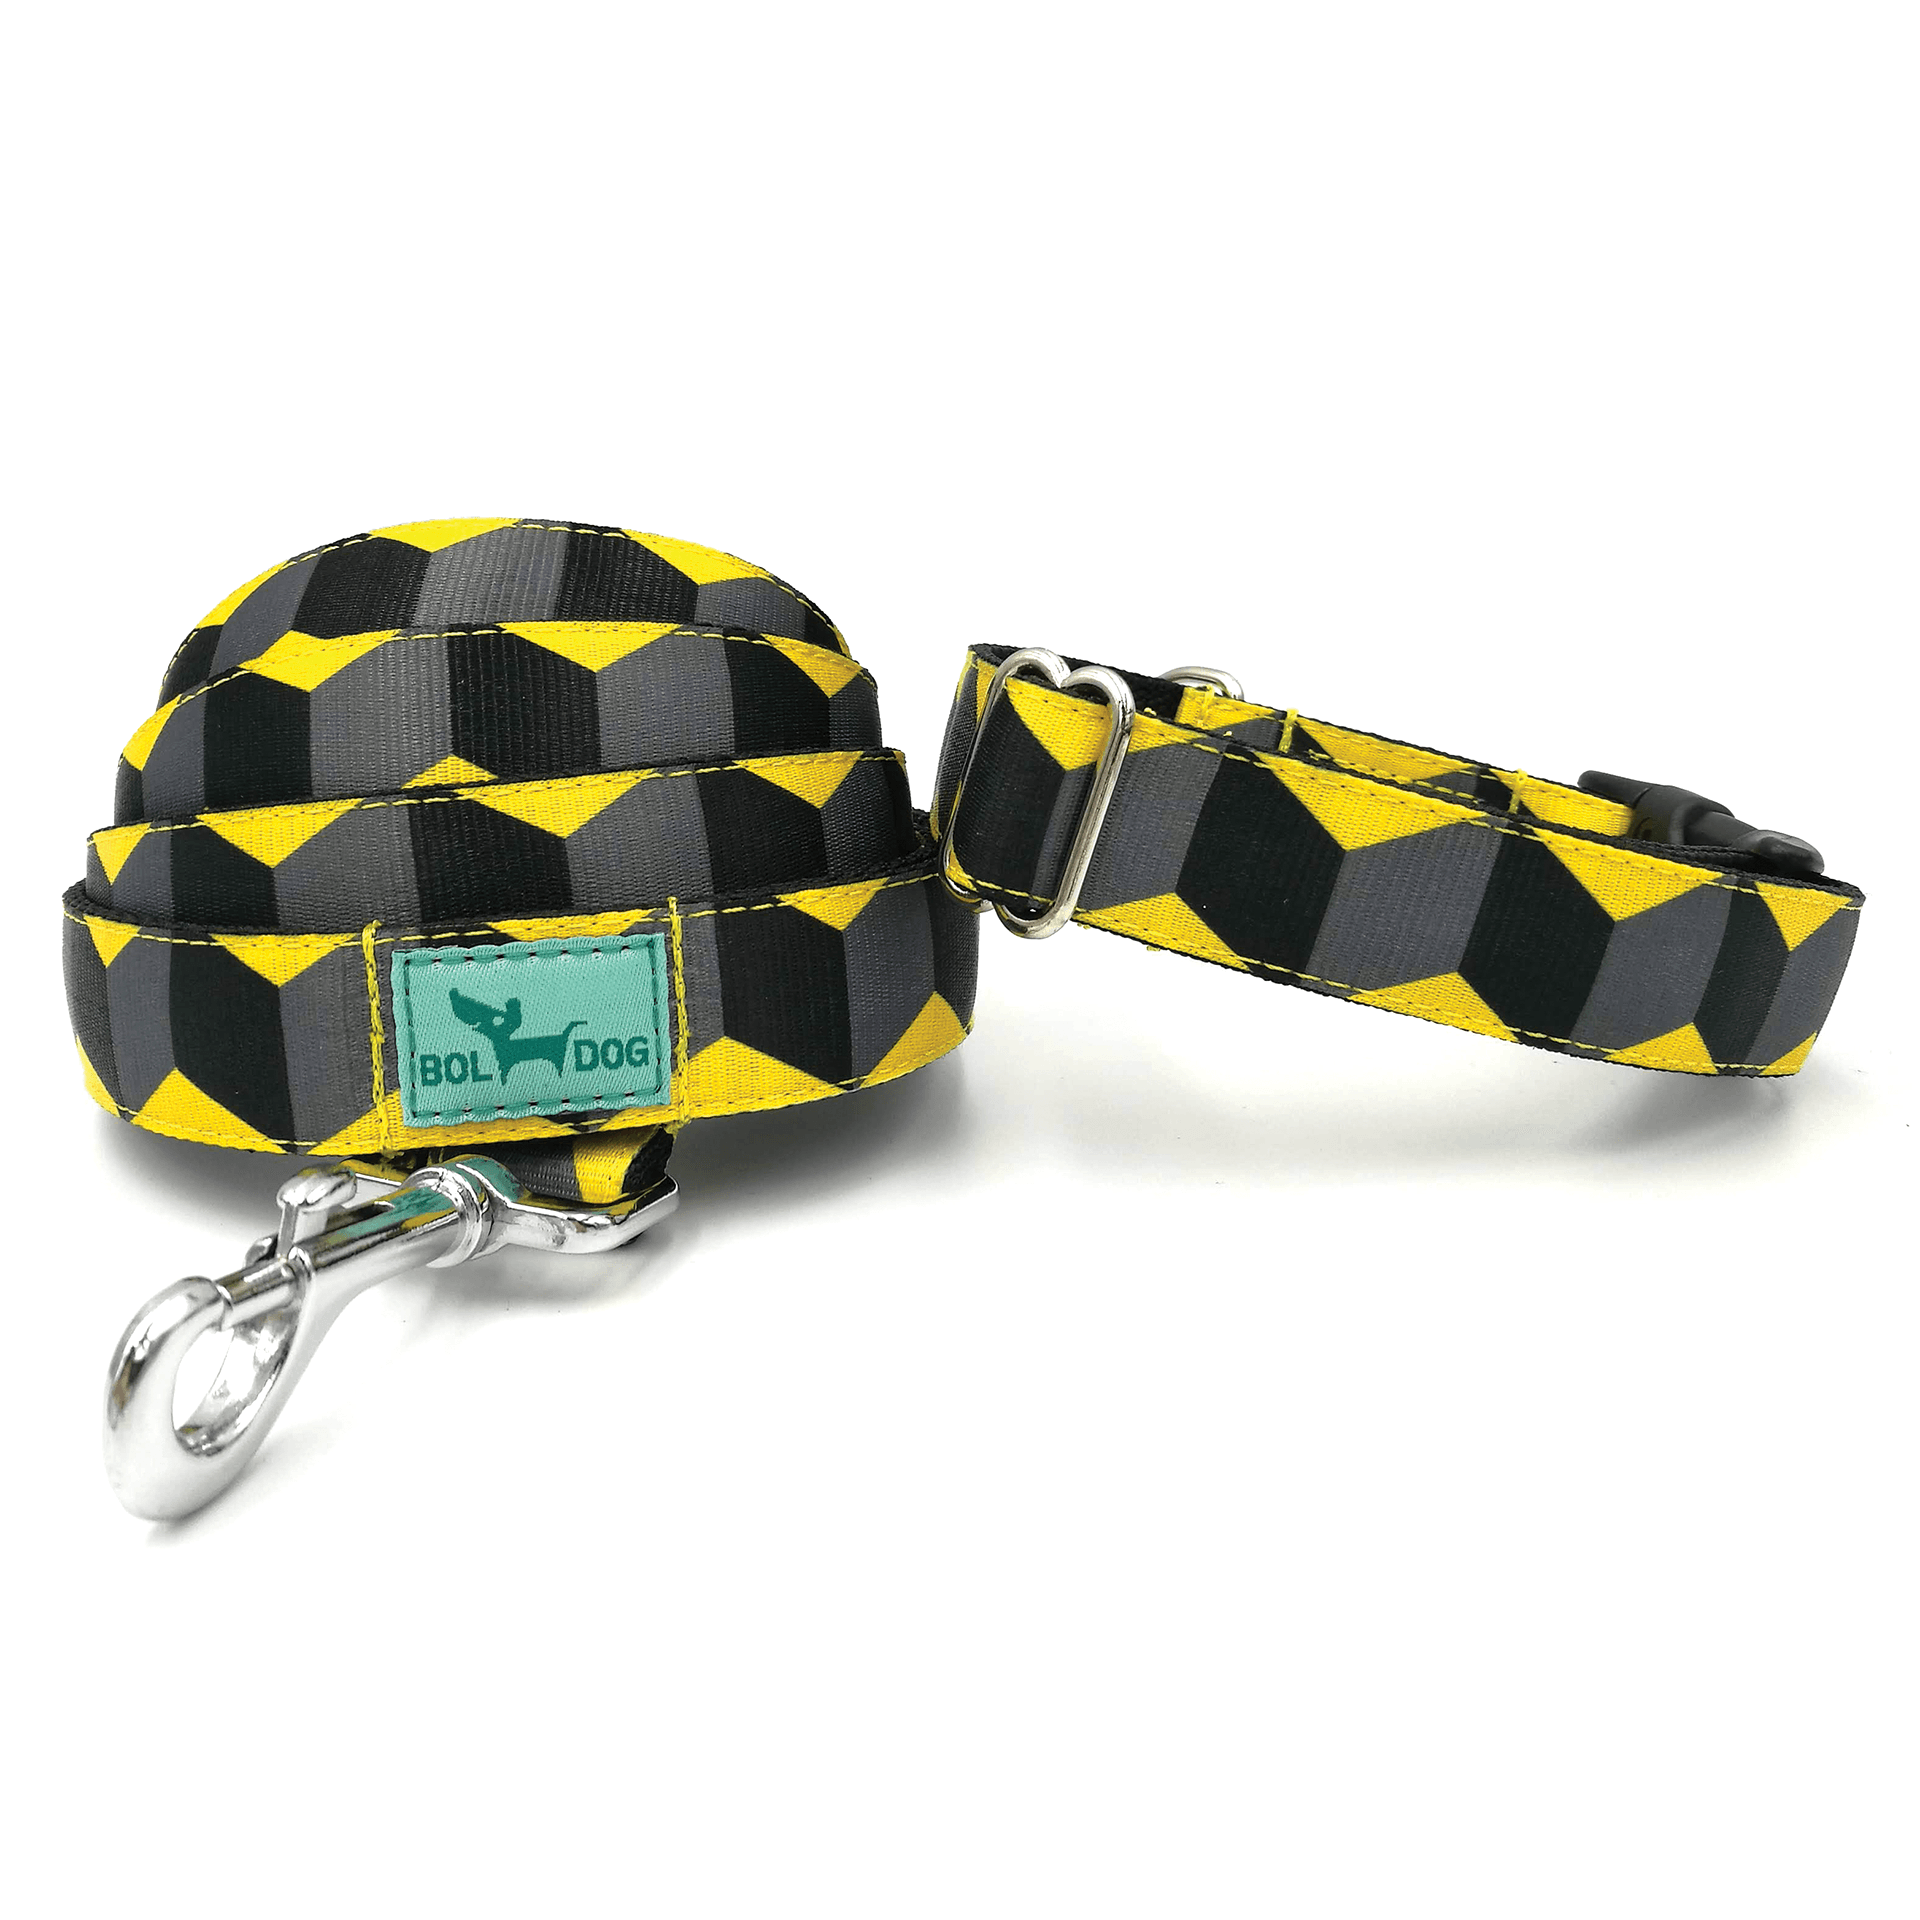 cube pattern dog collar and leash set